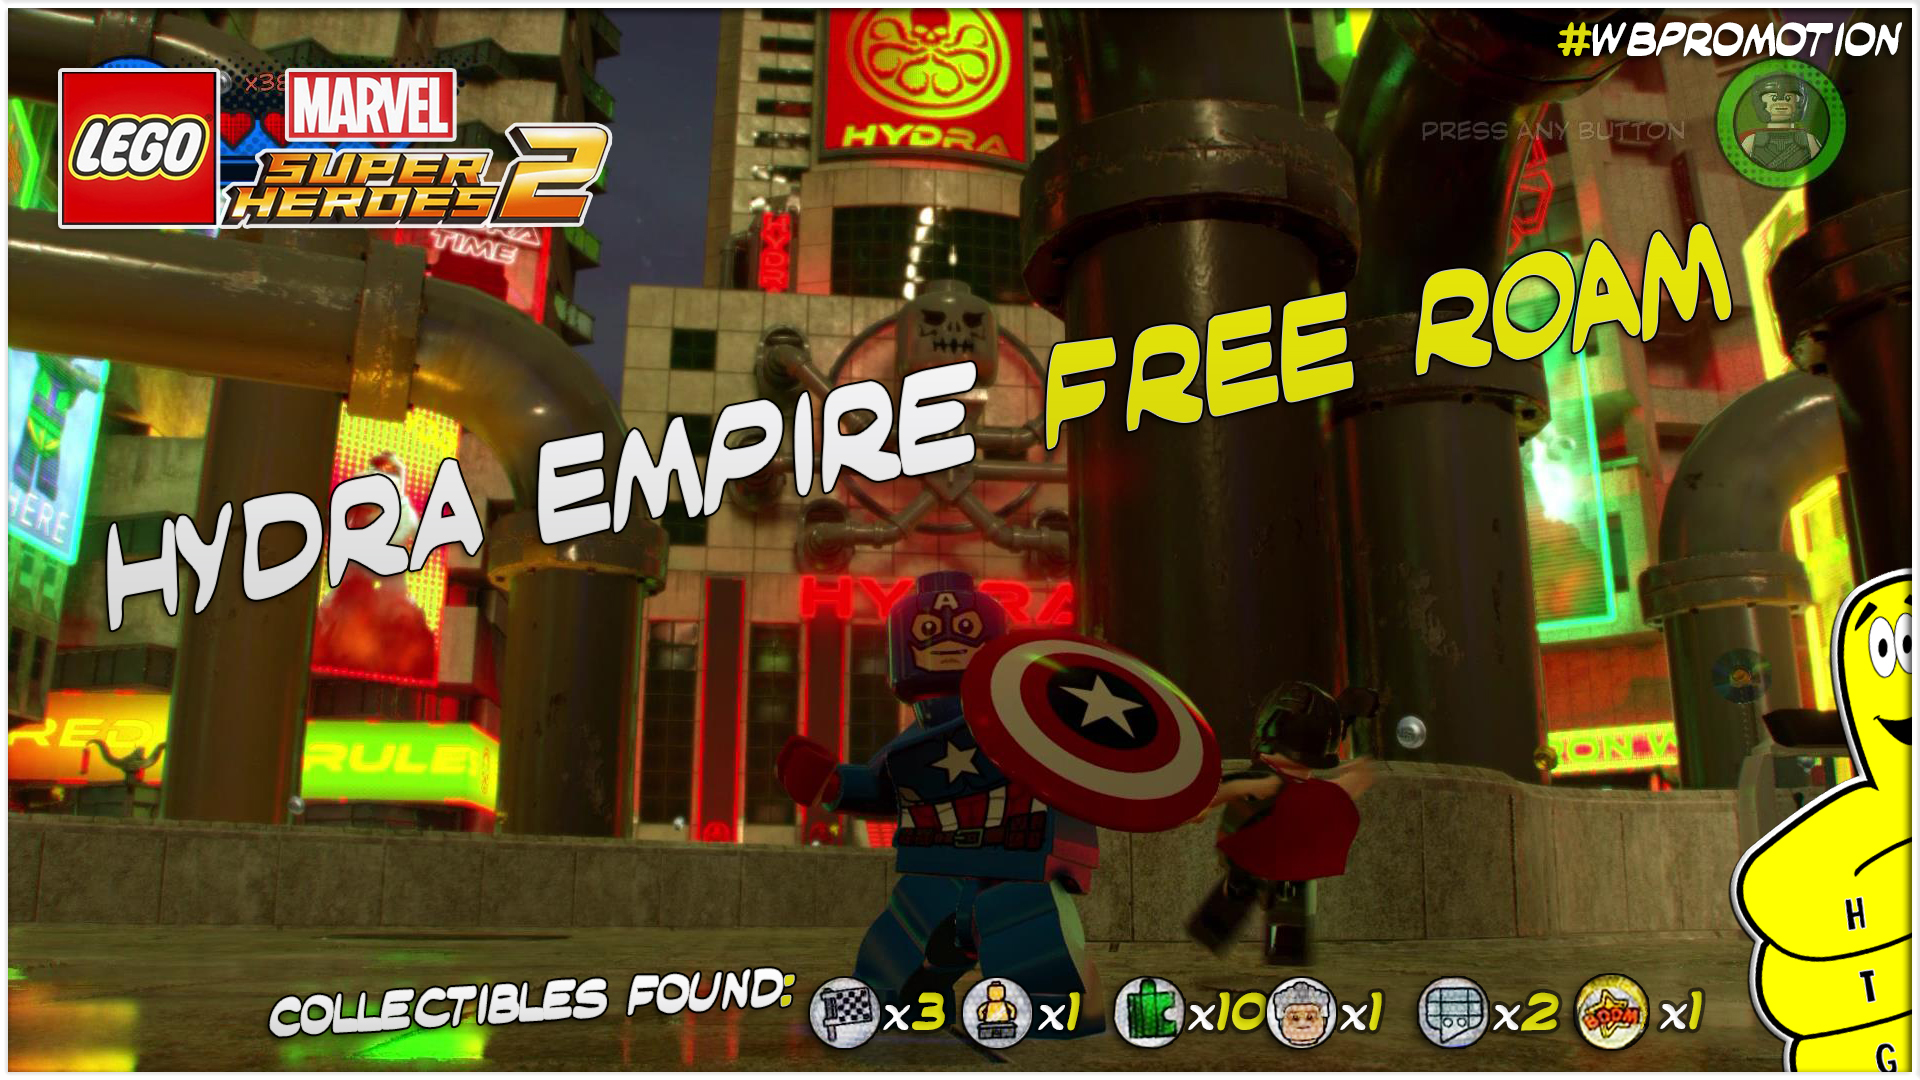 Lego Marvel Superheroes 2: Hydra Empire FREE ROAM (All Collectibles) – HTG